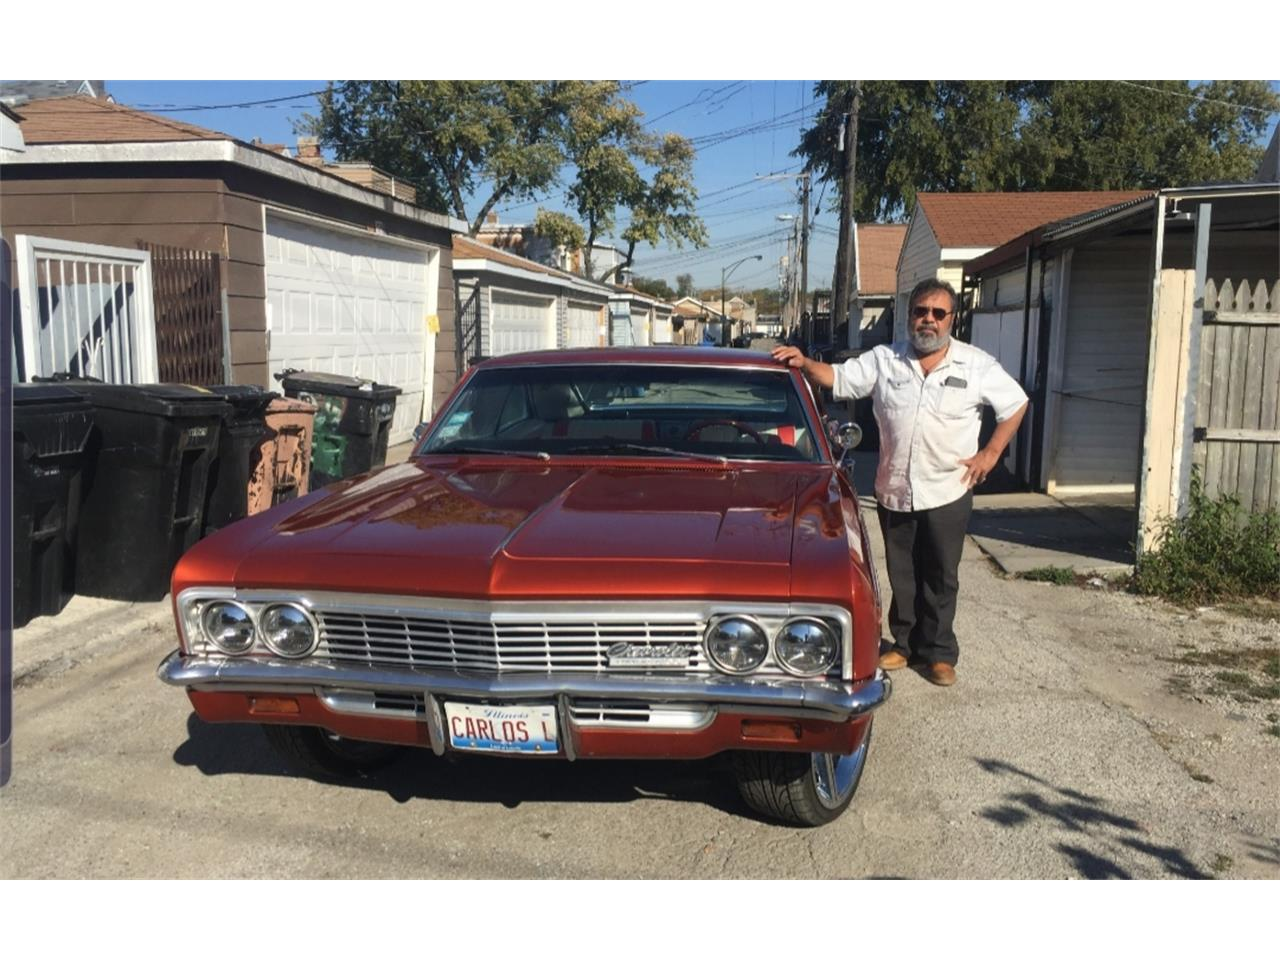 1966 Chevrolet Impala SS (CC-1257647) for sale in Chicago, Illinois